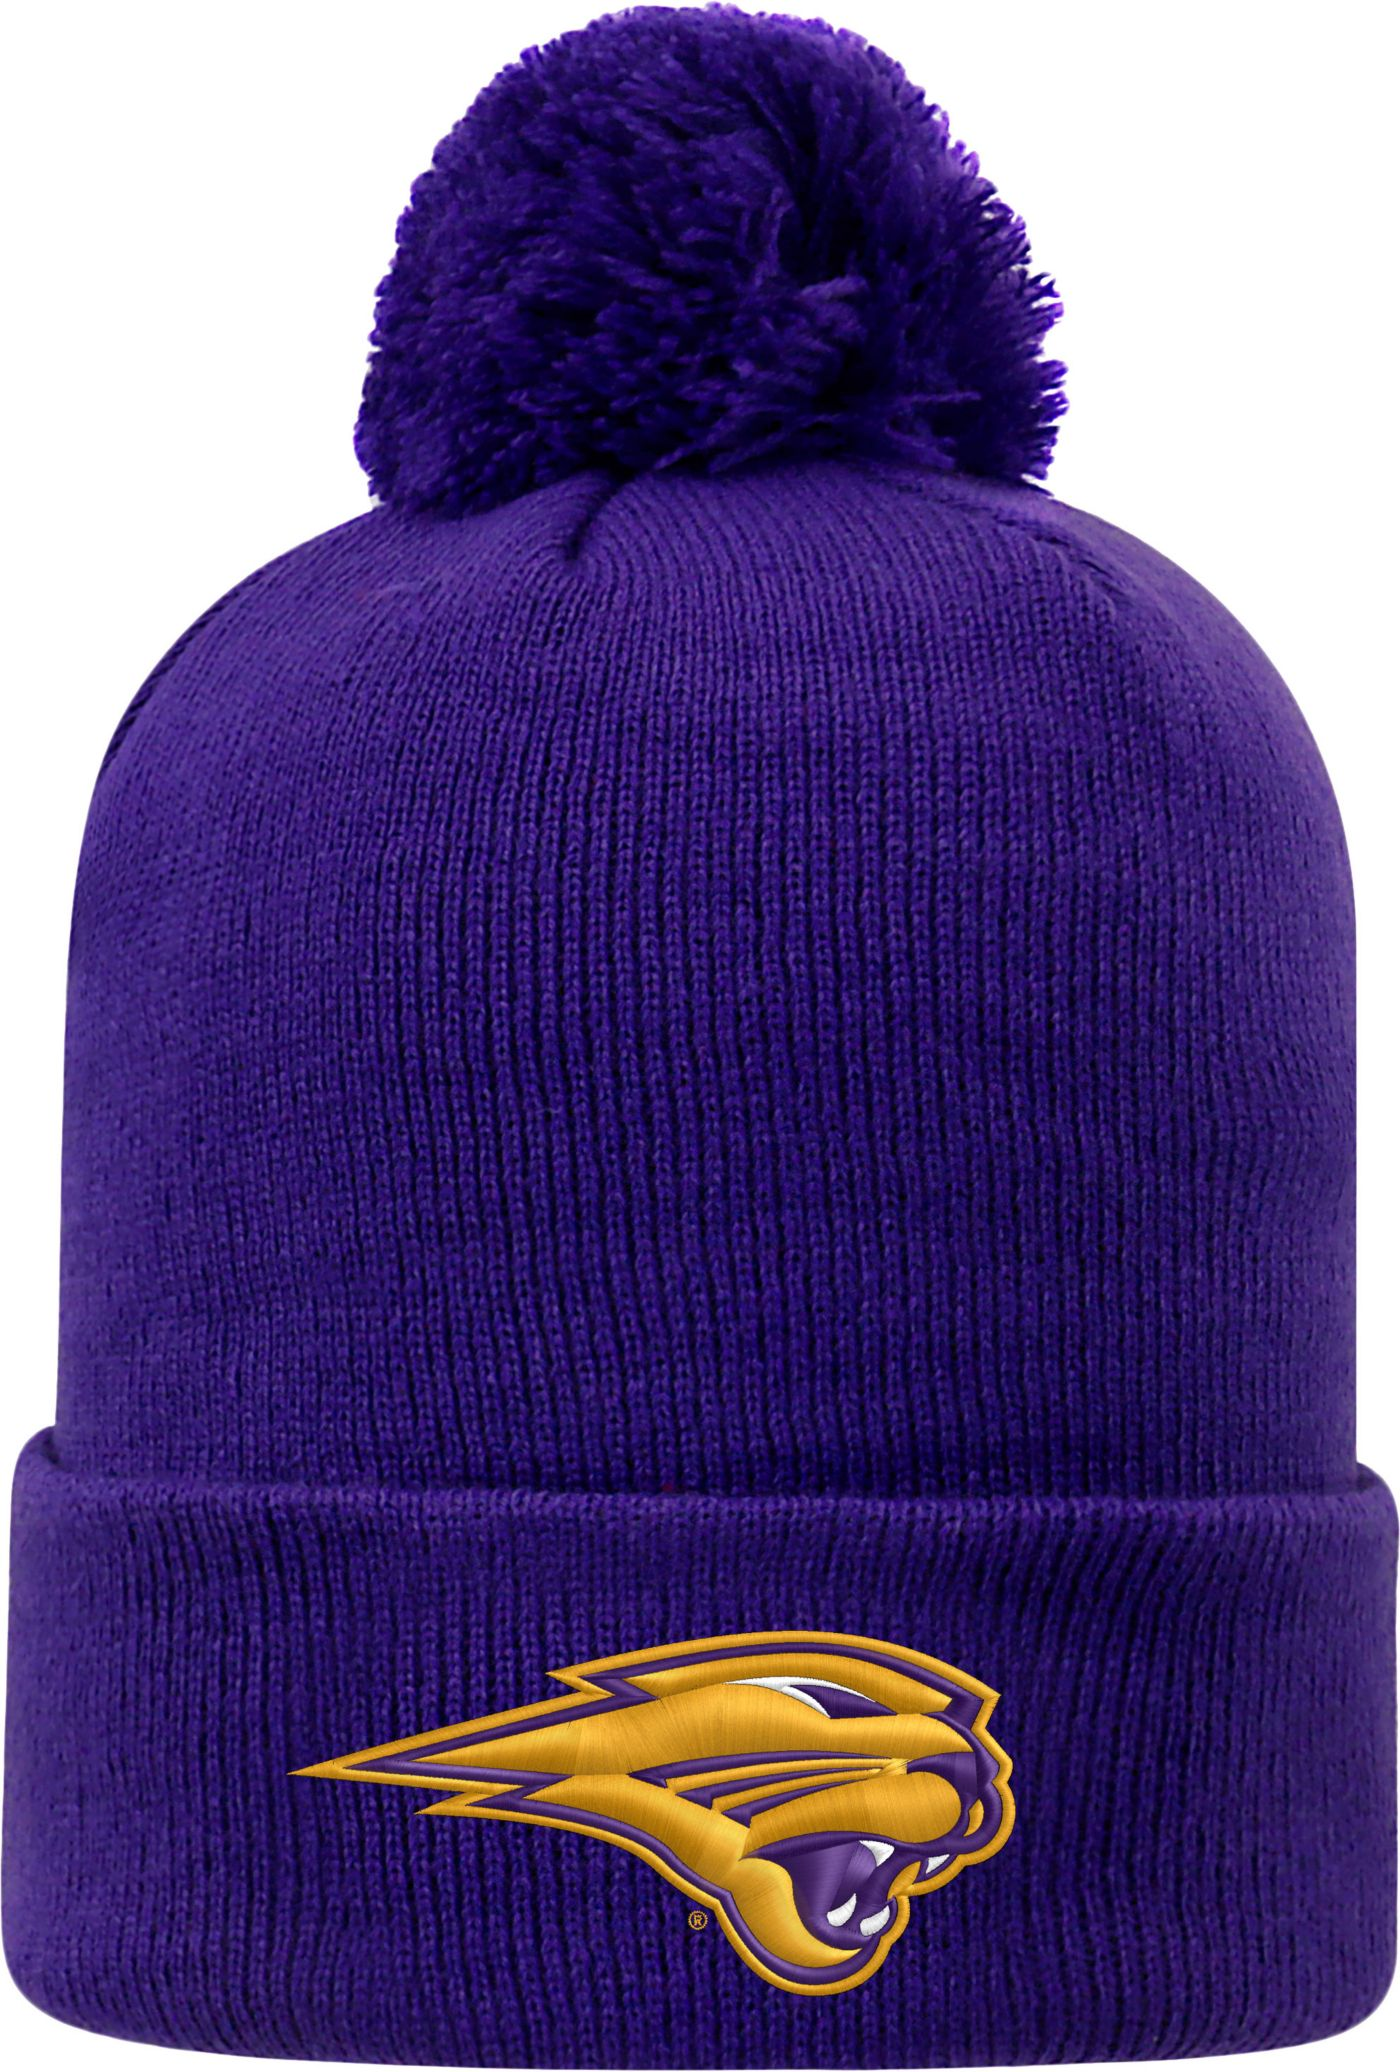 Top of the World Men's Northern Iowa Panthers  Purple Pom Knit Beanie